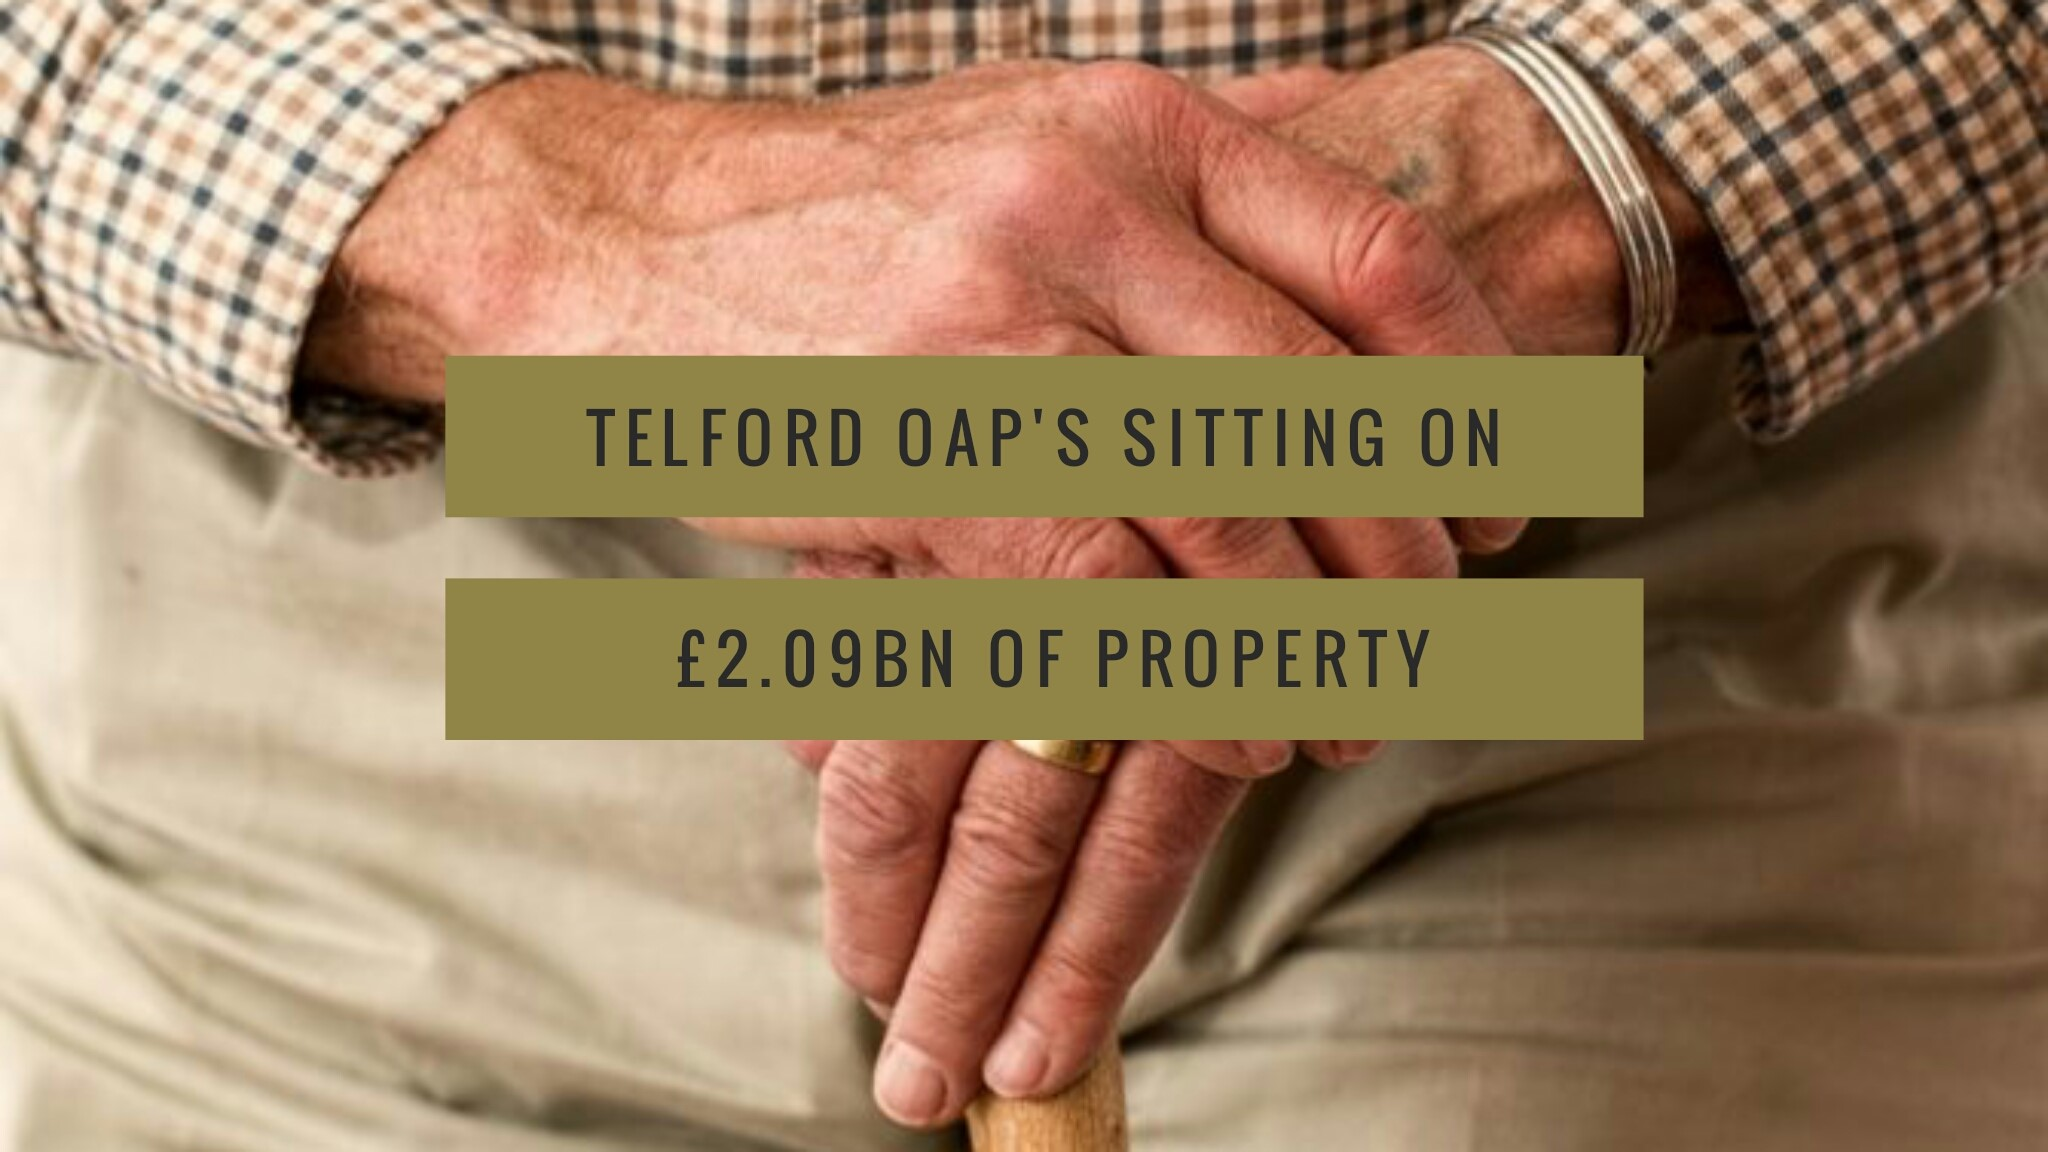 Telford OAP's sitting on £2.09 bn of Property